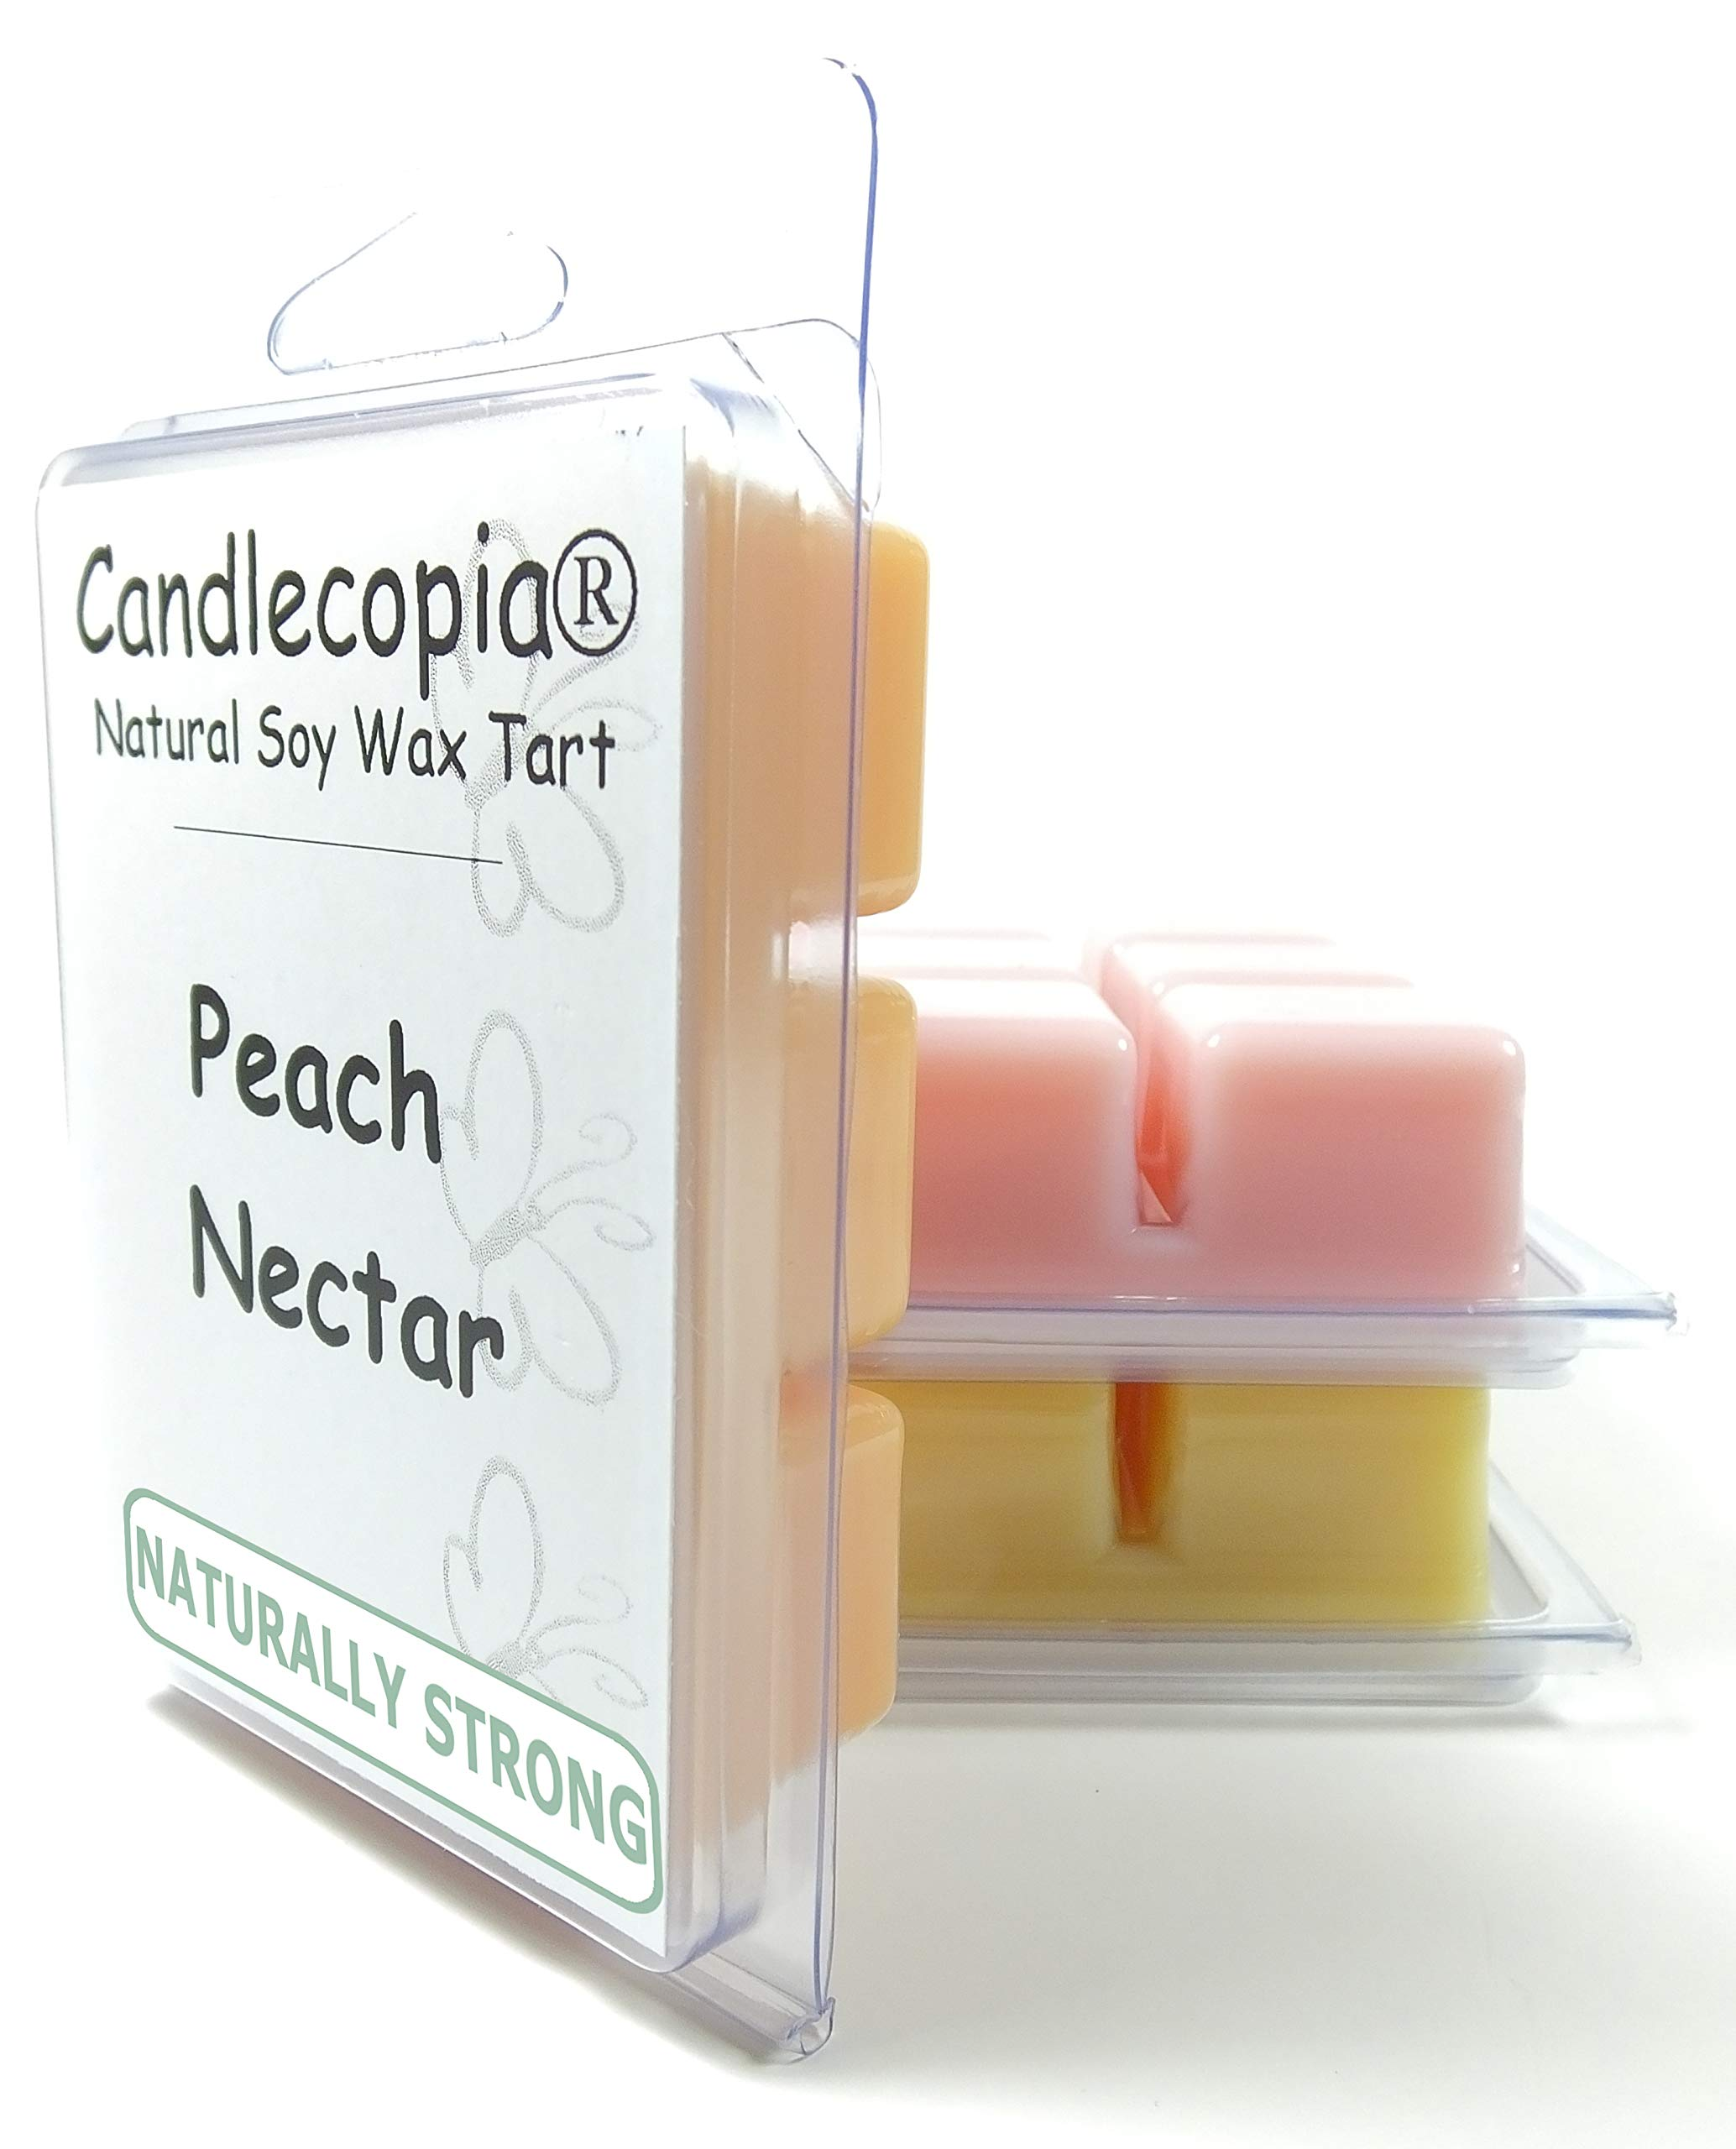 Candlecopia Orange Blossom, Japanese Cherry Blossom and Peach Nectar Strongly Scented Hand Poured Vegan Wax Melts, 18 Scented Wax Cubes, 9.6 Ounces in 3 x 6-Packs